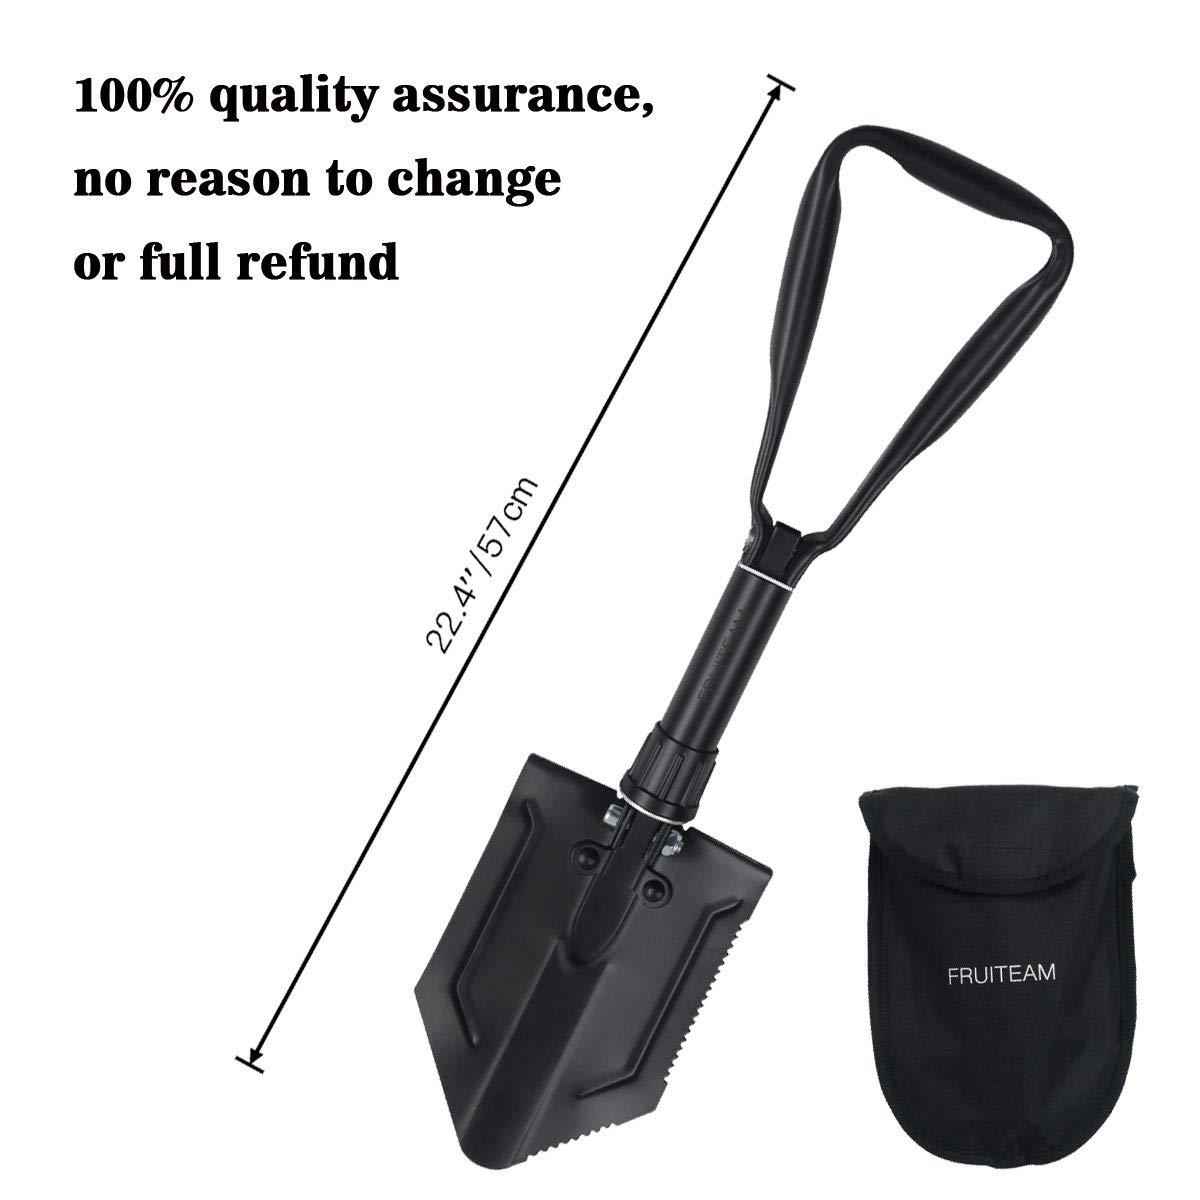 FRUITEAM Folding shovel with triangle handle Military Folding Handle Shovel